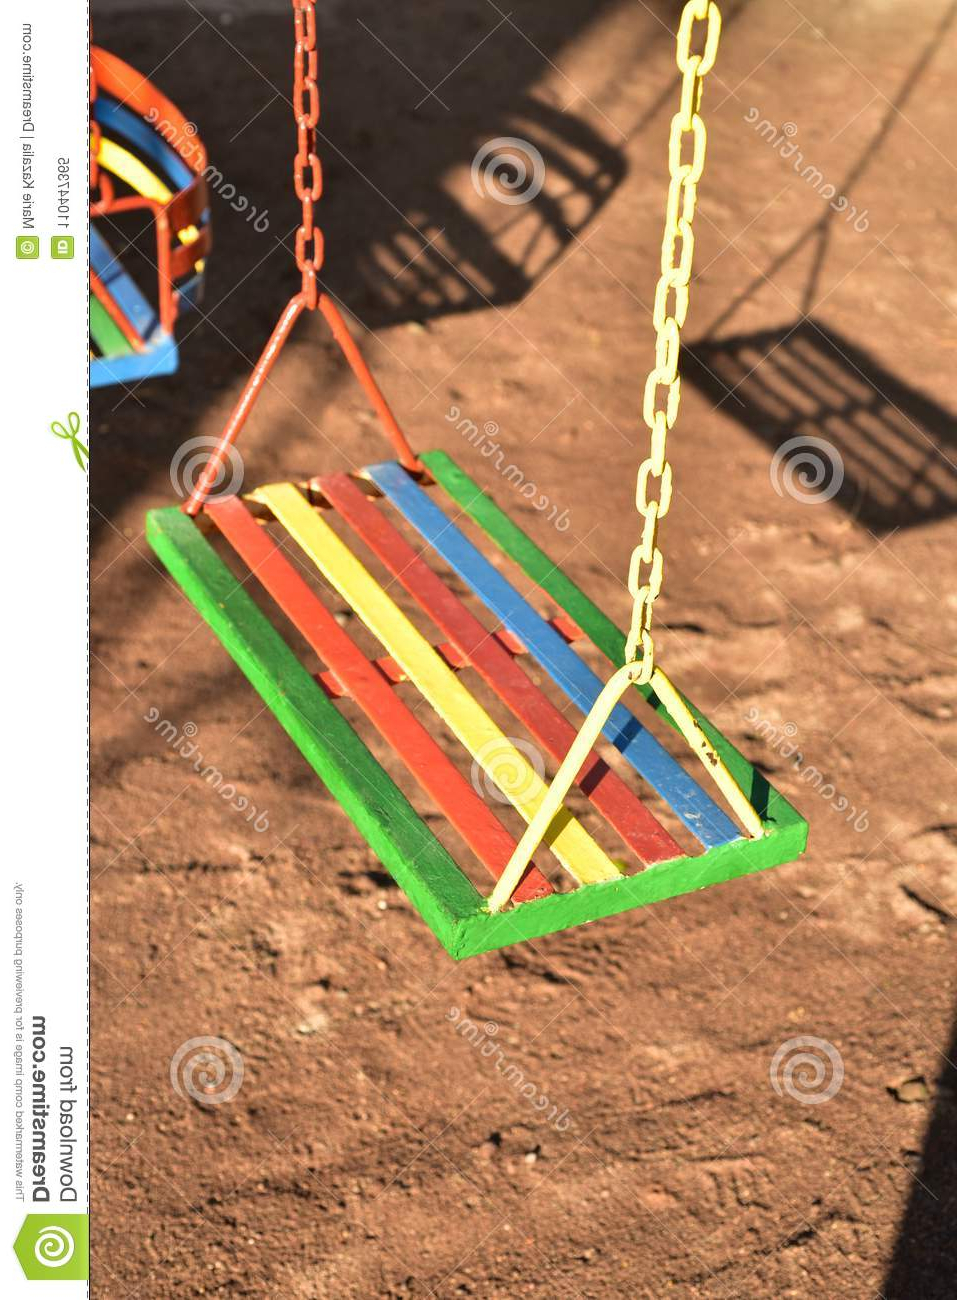 Multi Color Painted Swing For Child On Playground Stock Pertaining To Latest Swing Seats With Chains (View 14 of 30)